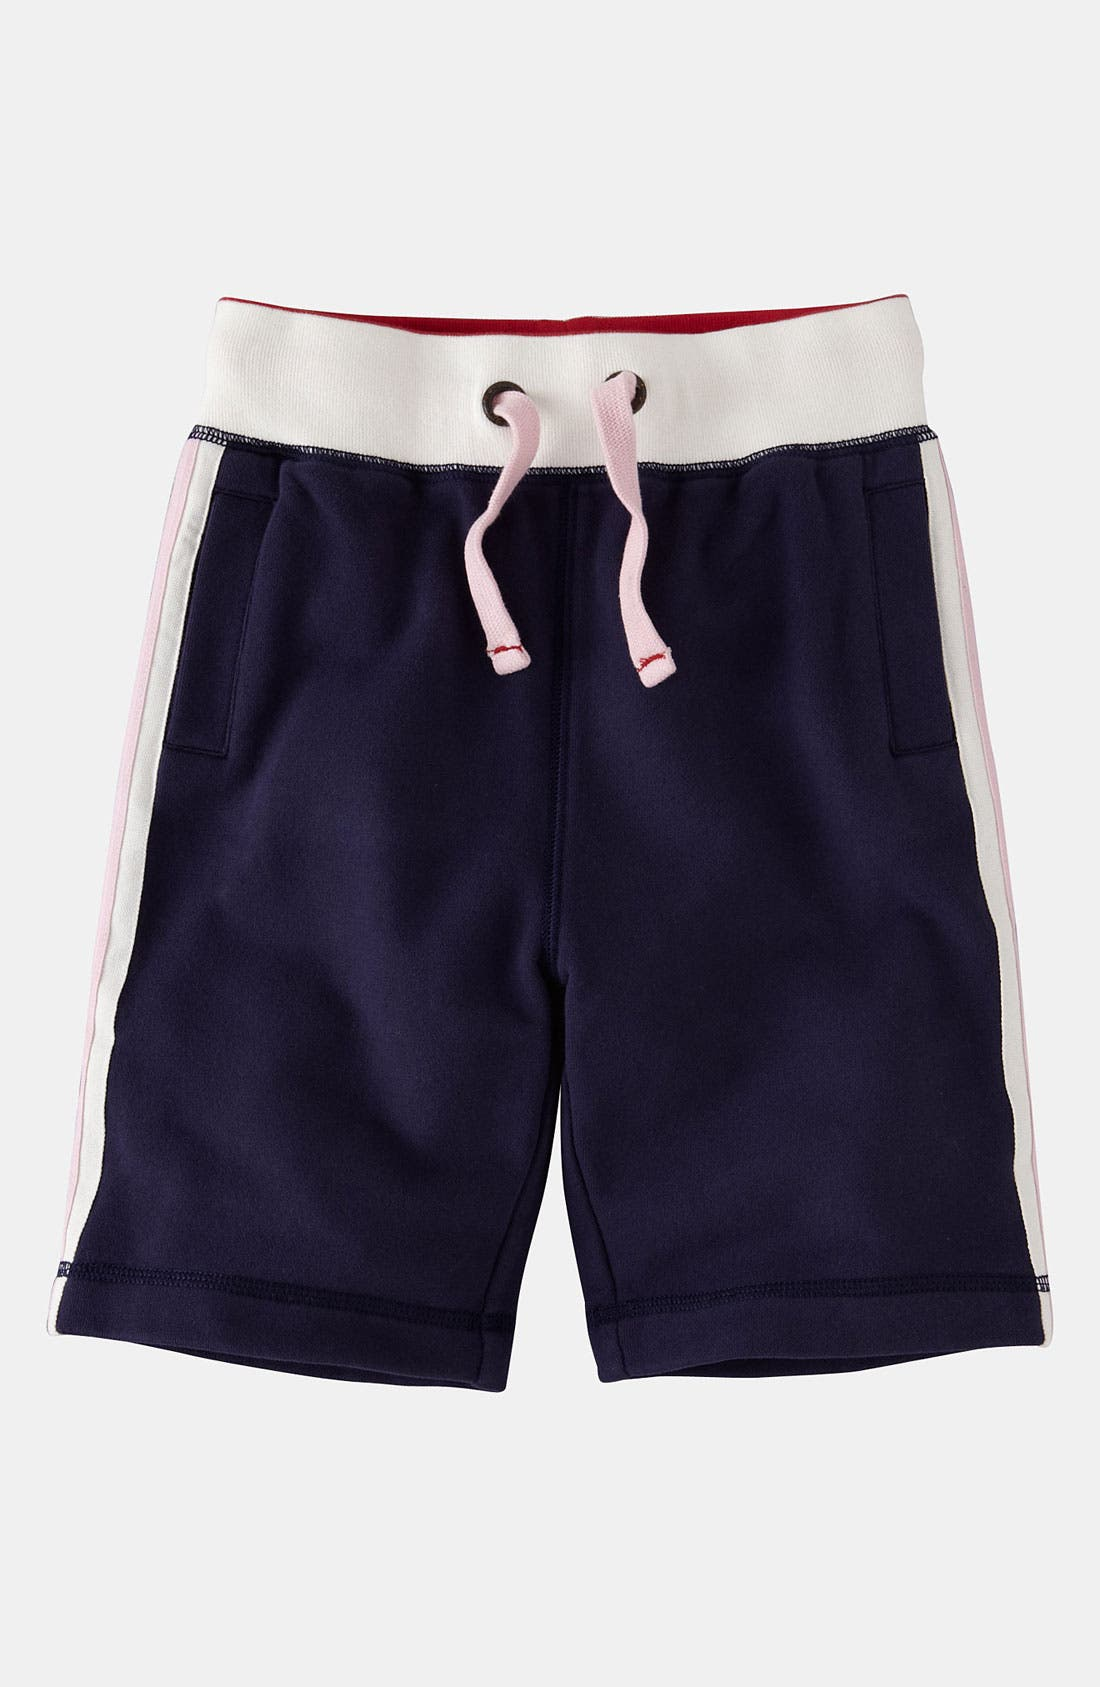 Main Image - Johnnie b Jersey Shorts (Big Boys)